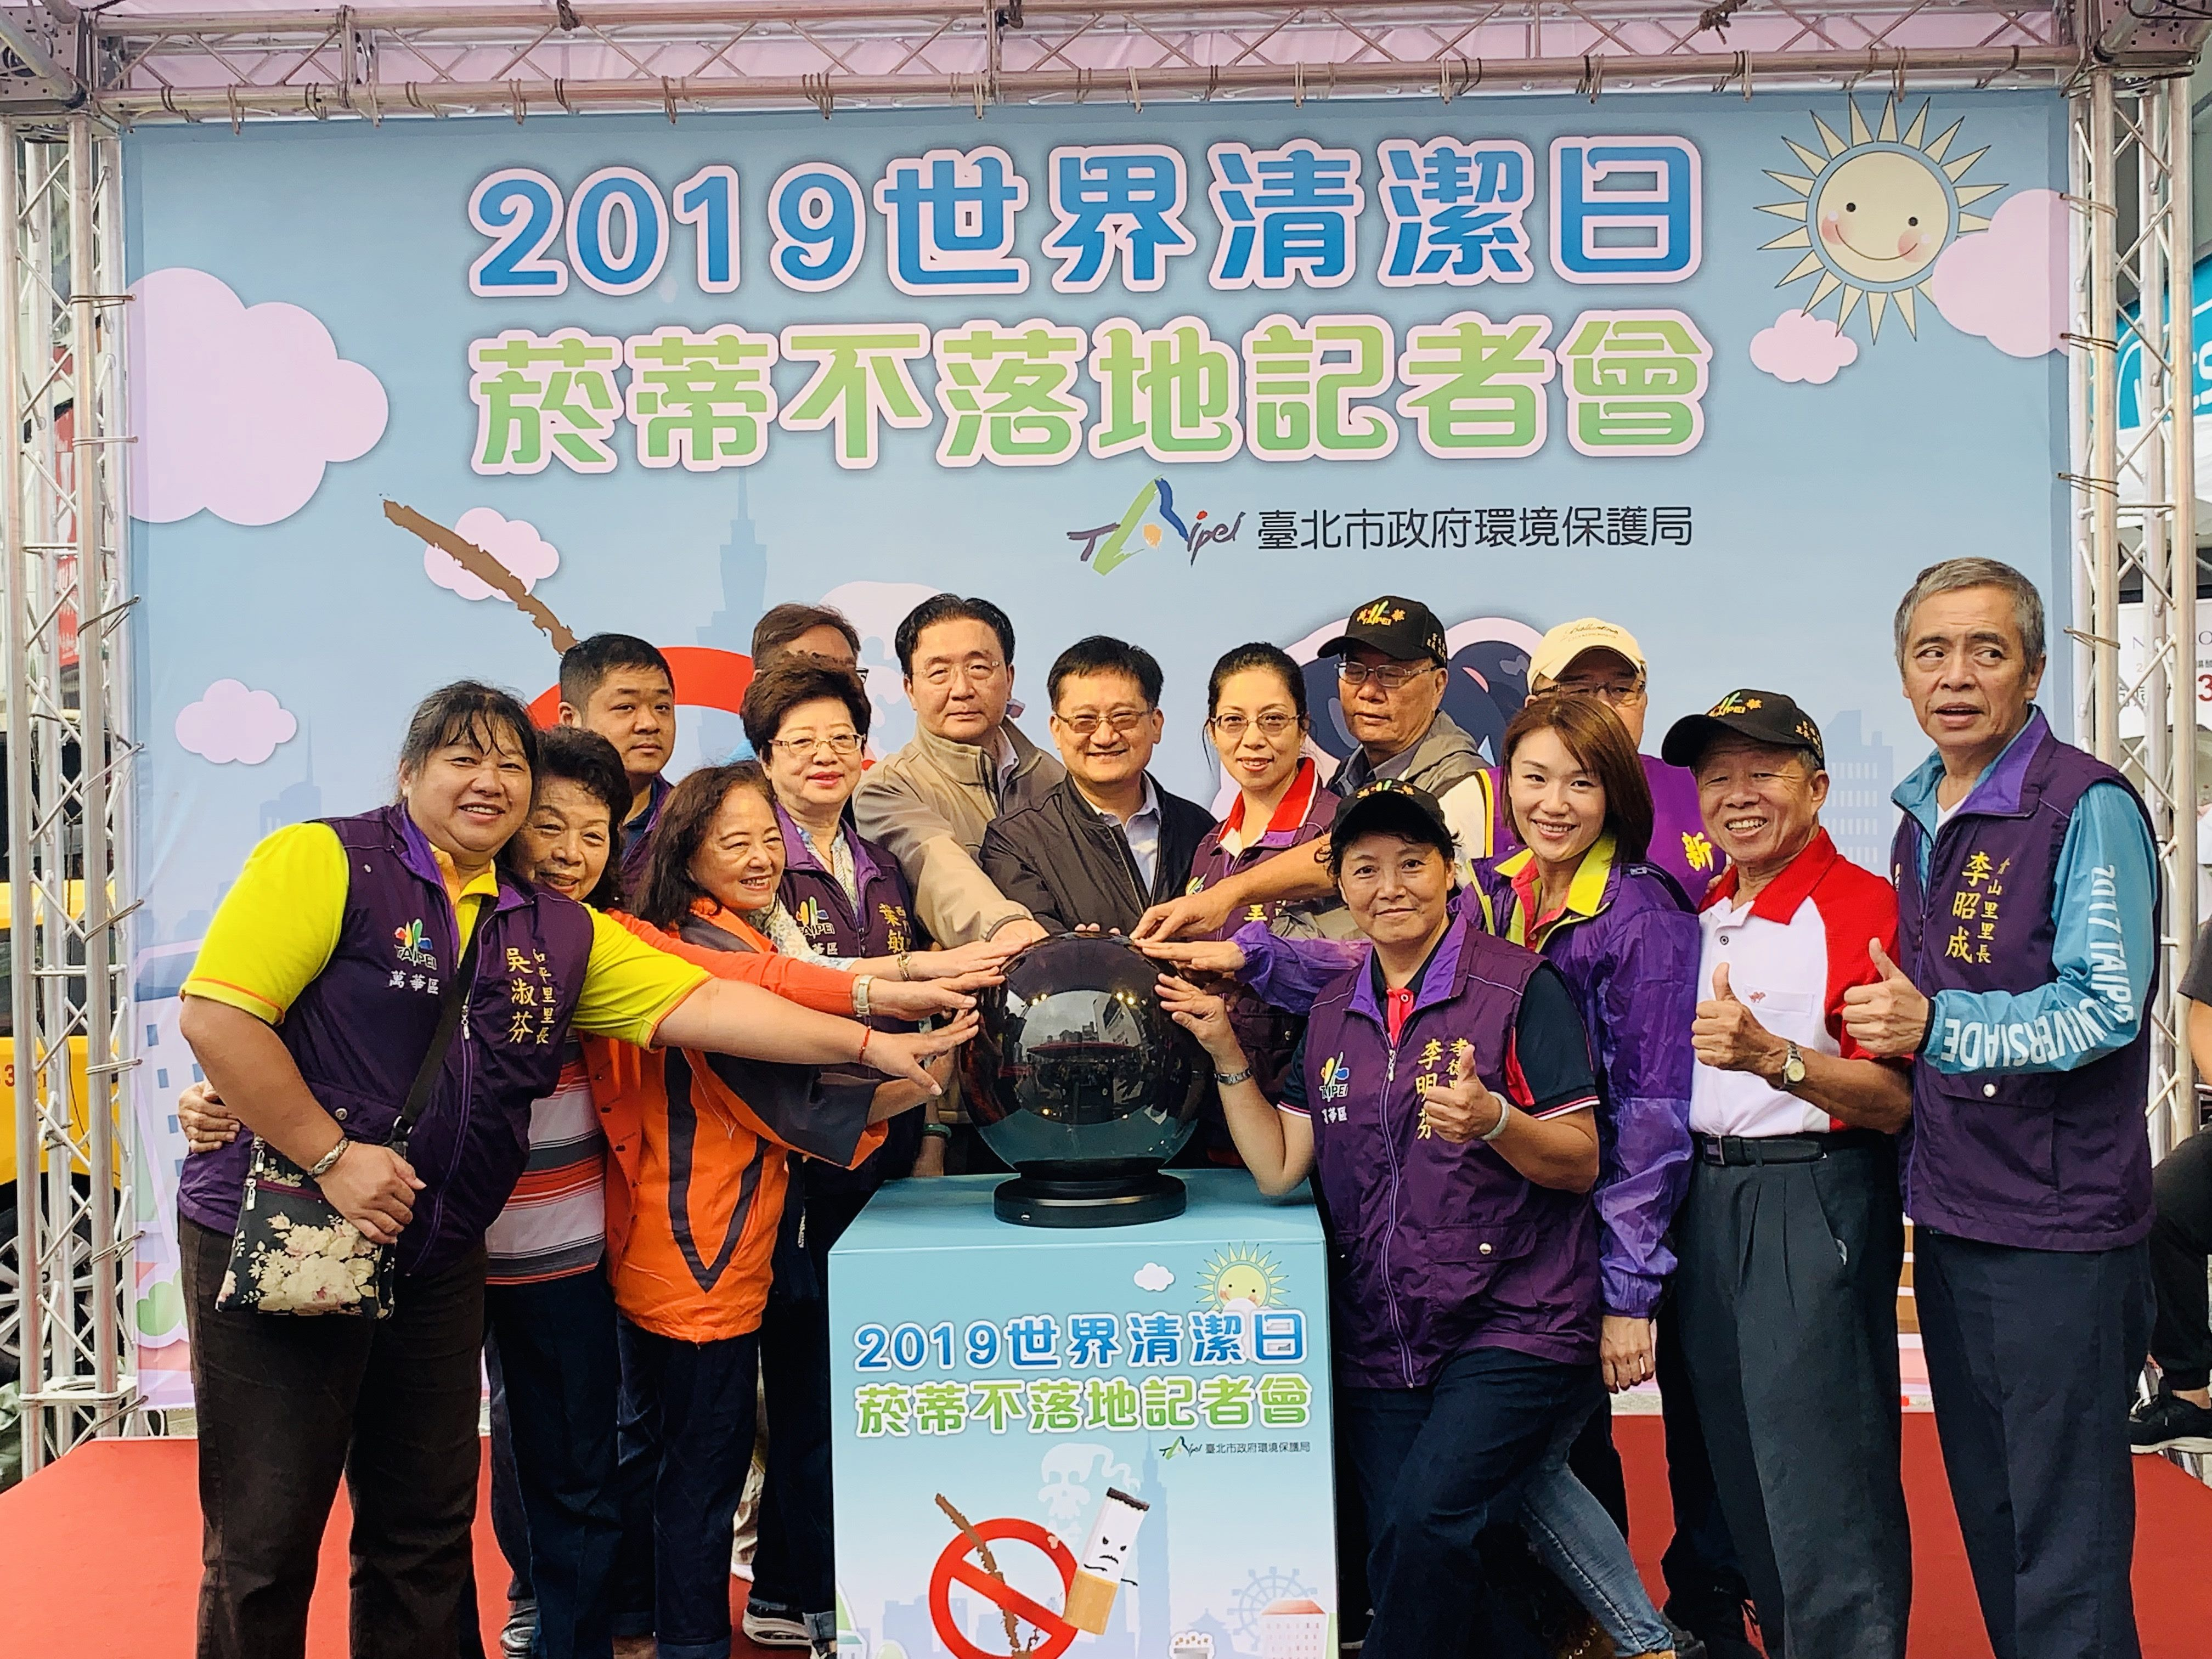 2019 Clean up the World Weekend press event